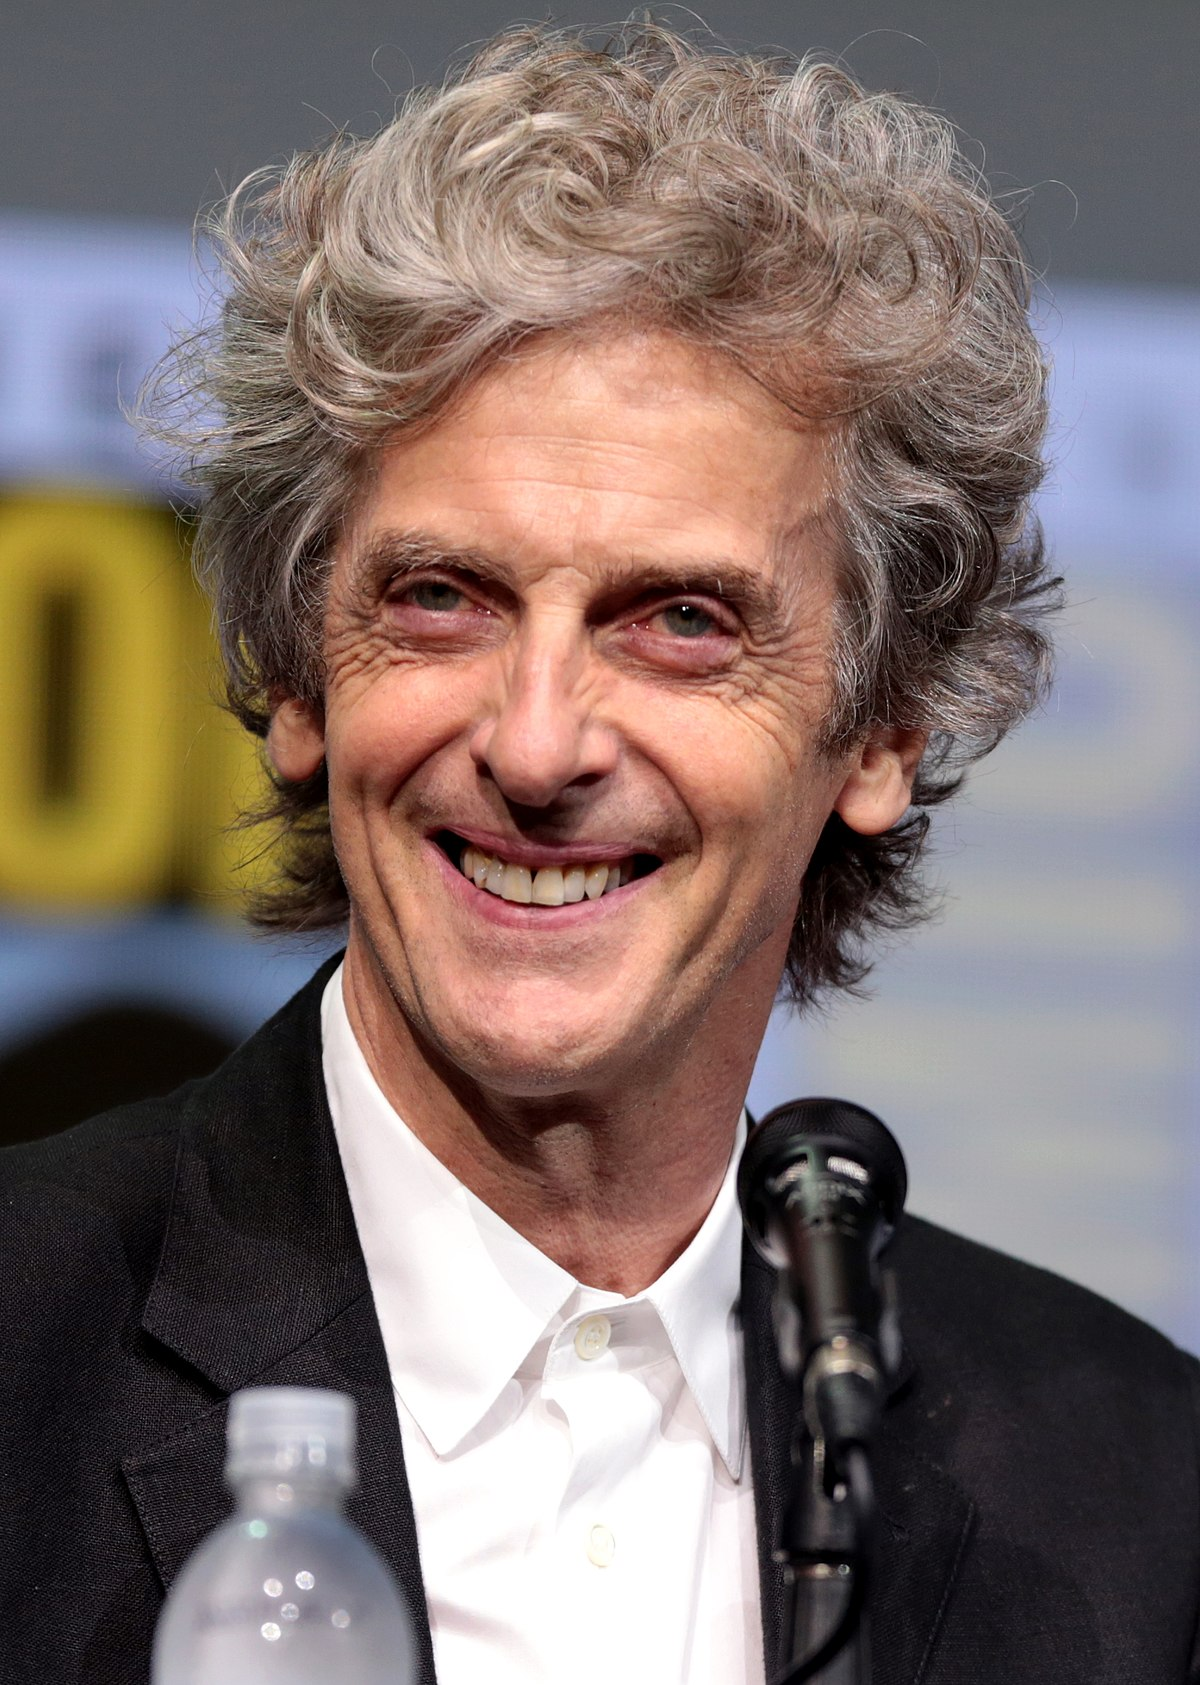 Peter Capaldi (born 1958)